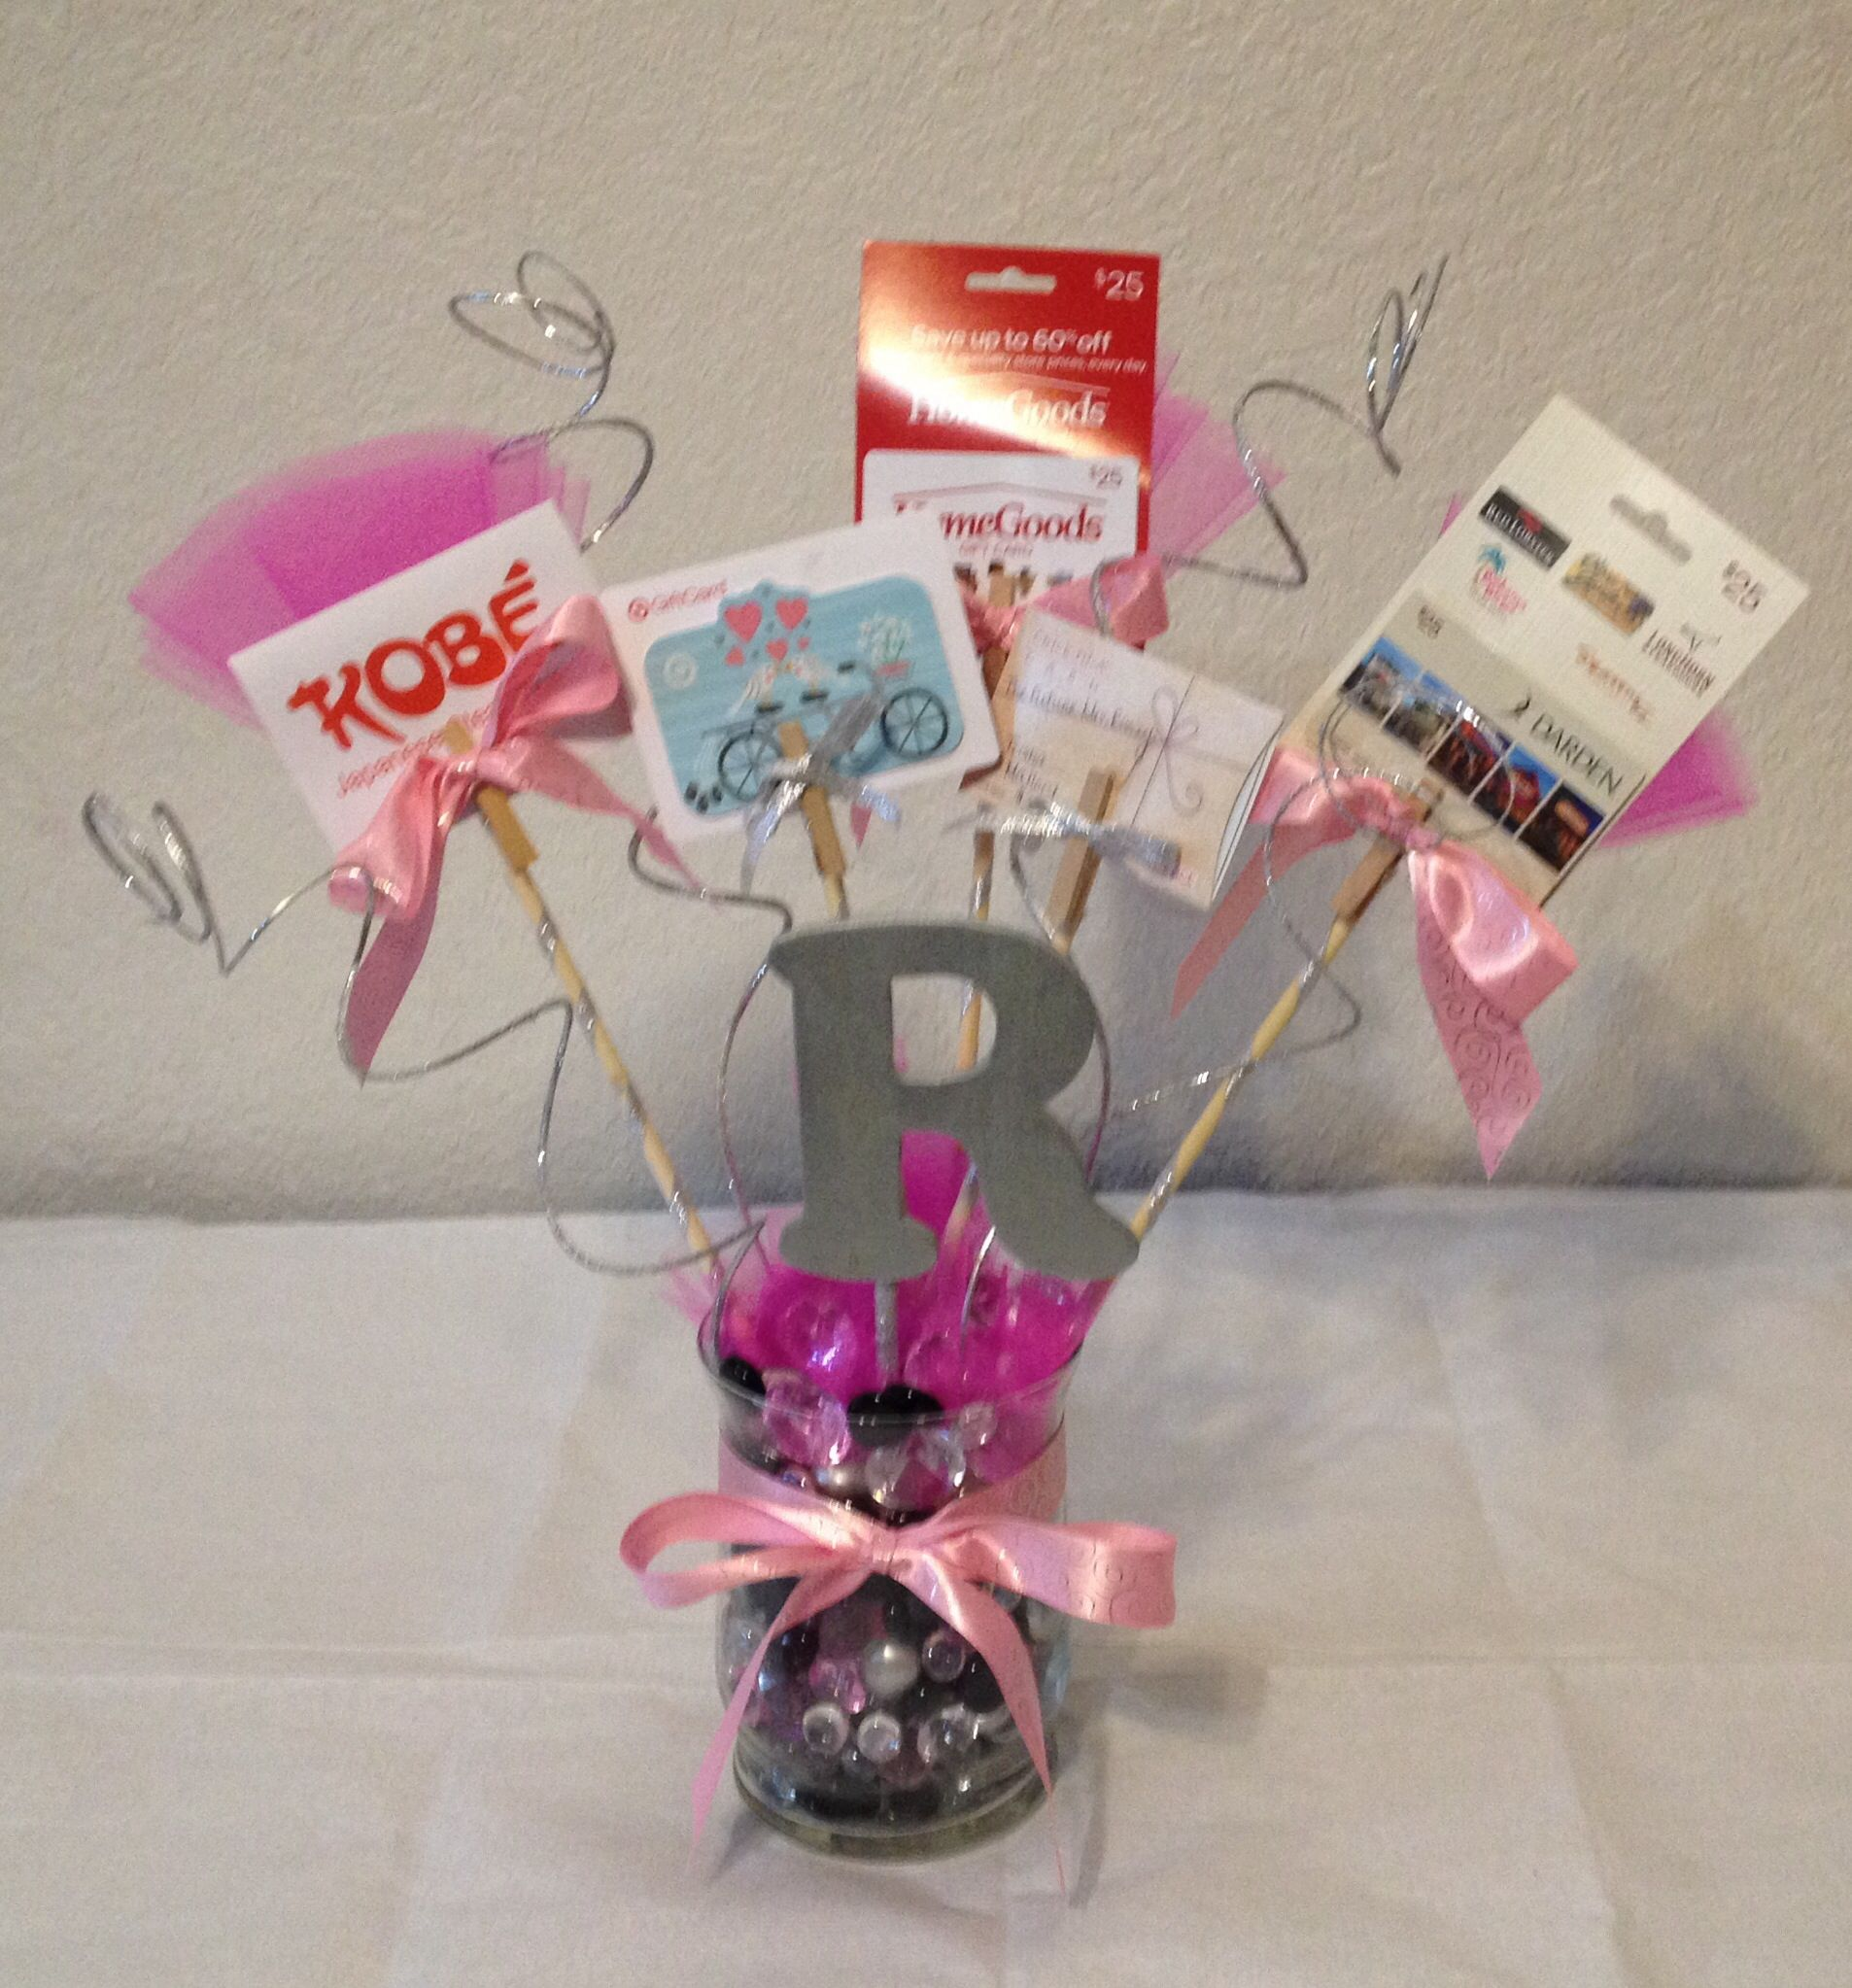 Gift Card As Wedding Gift: Bridal Shower Gift Card Bouquet DIY Materials Used: Glass